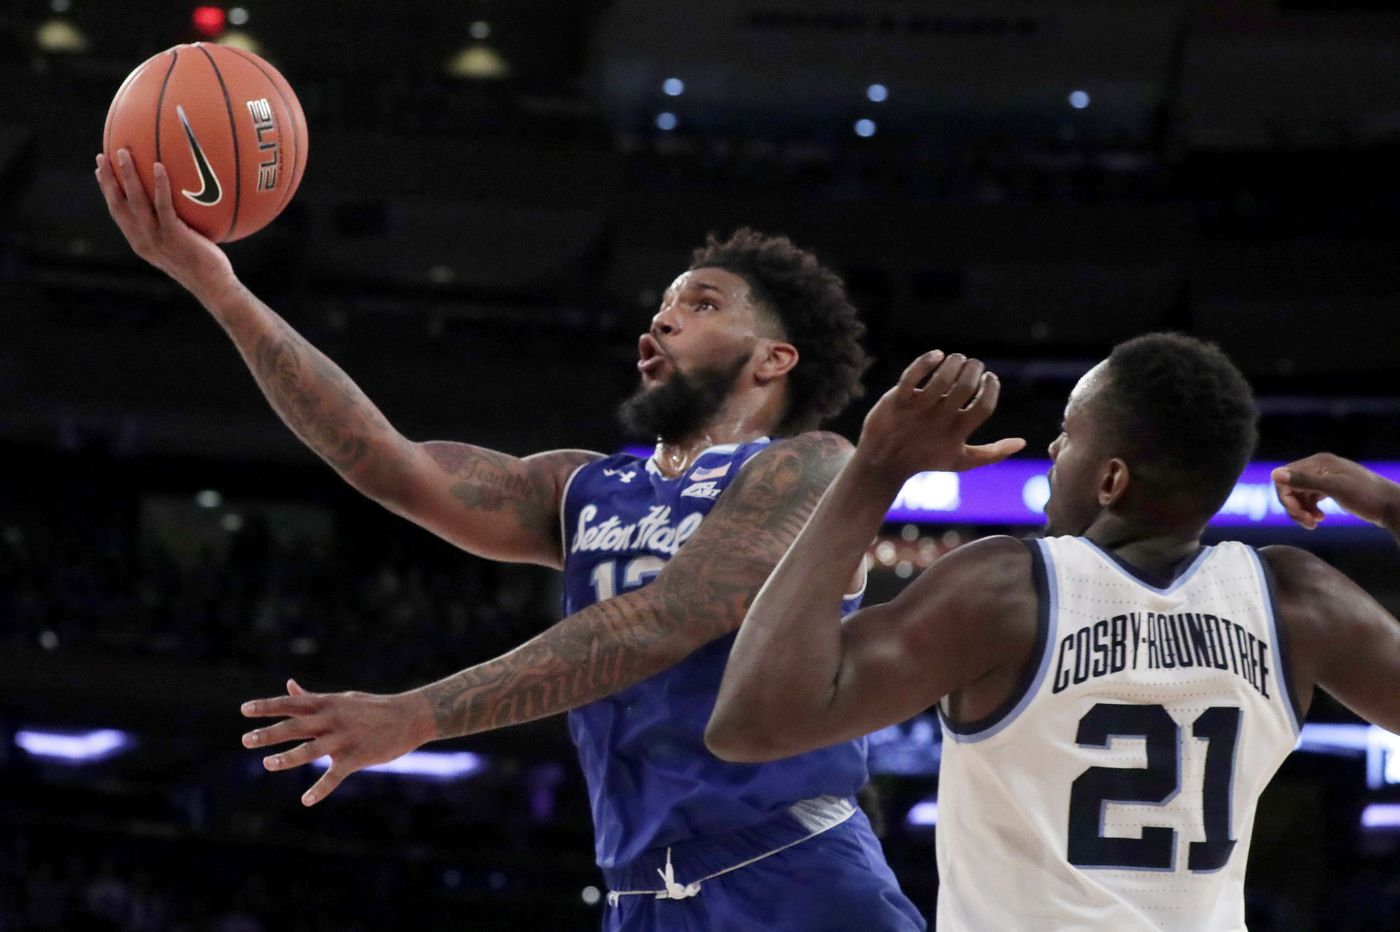 No. 10 Villanova and No. 12 Seton Hall, the Big East's top two teams, to meet in front of a sellout crowd